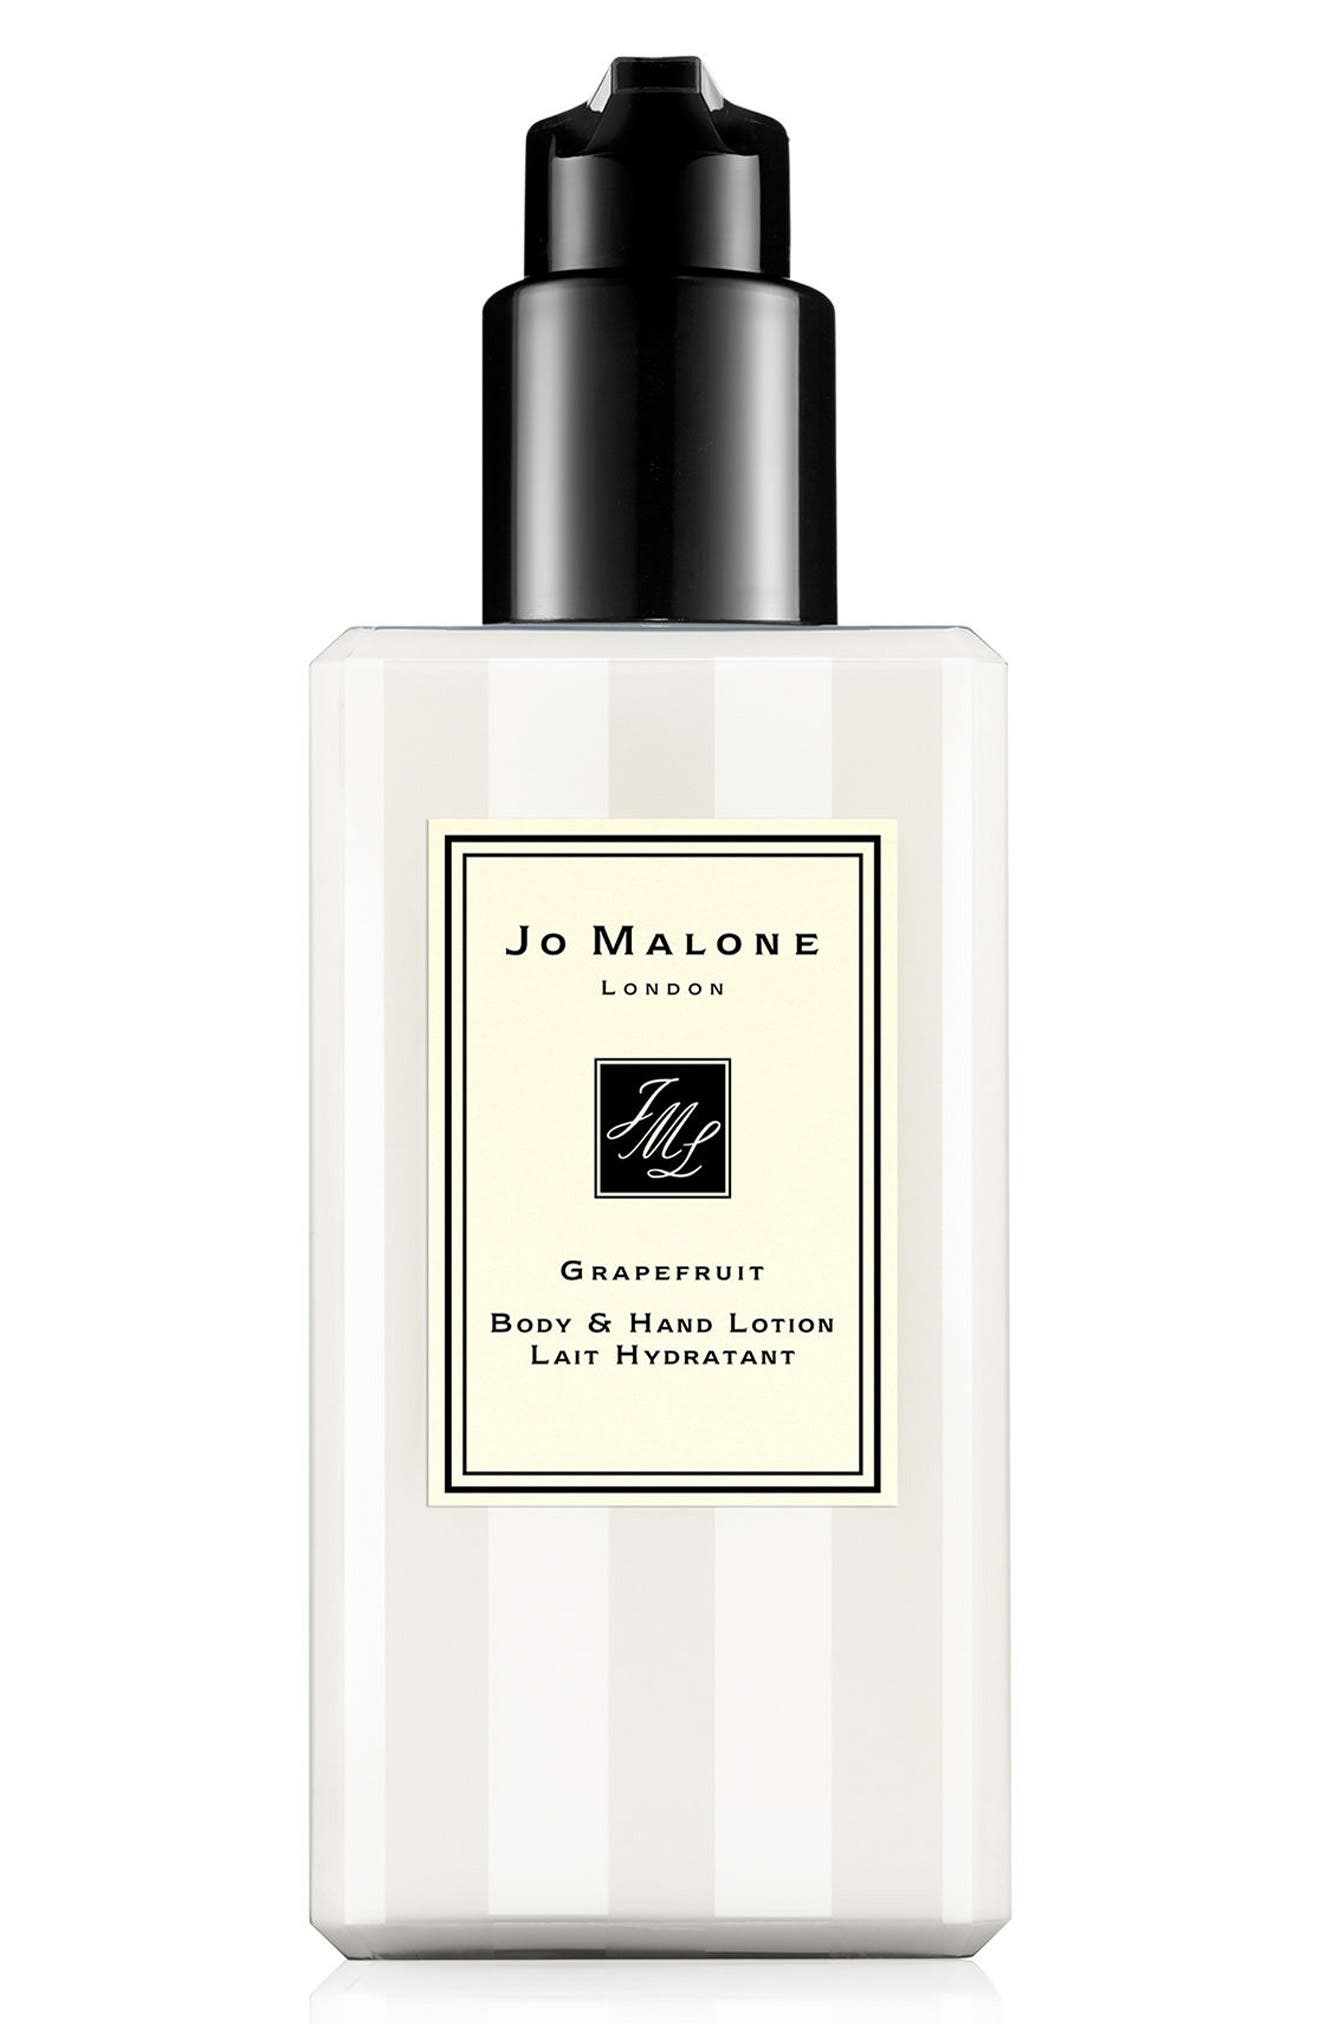 Jo Malone London™ 'Grapefruit' Body Lotion